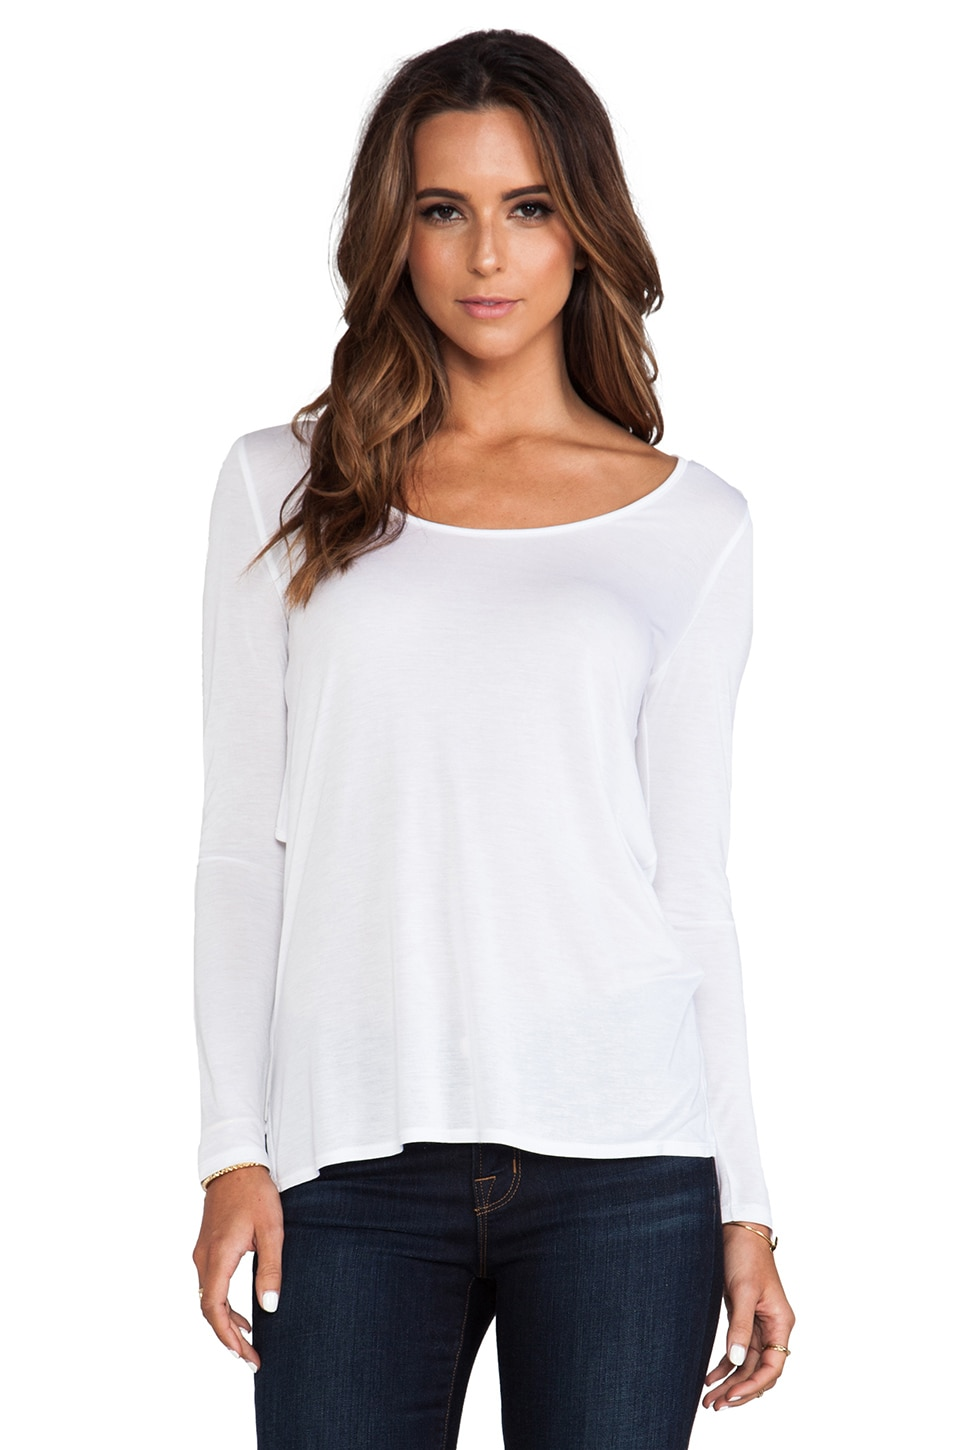 Lanston Layered Cutout Long Sleeve Tee in White